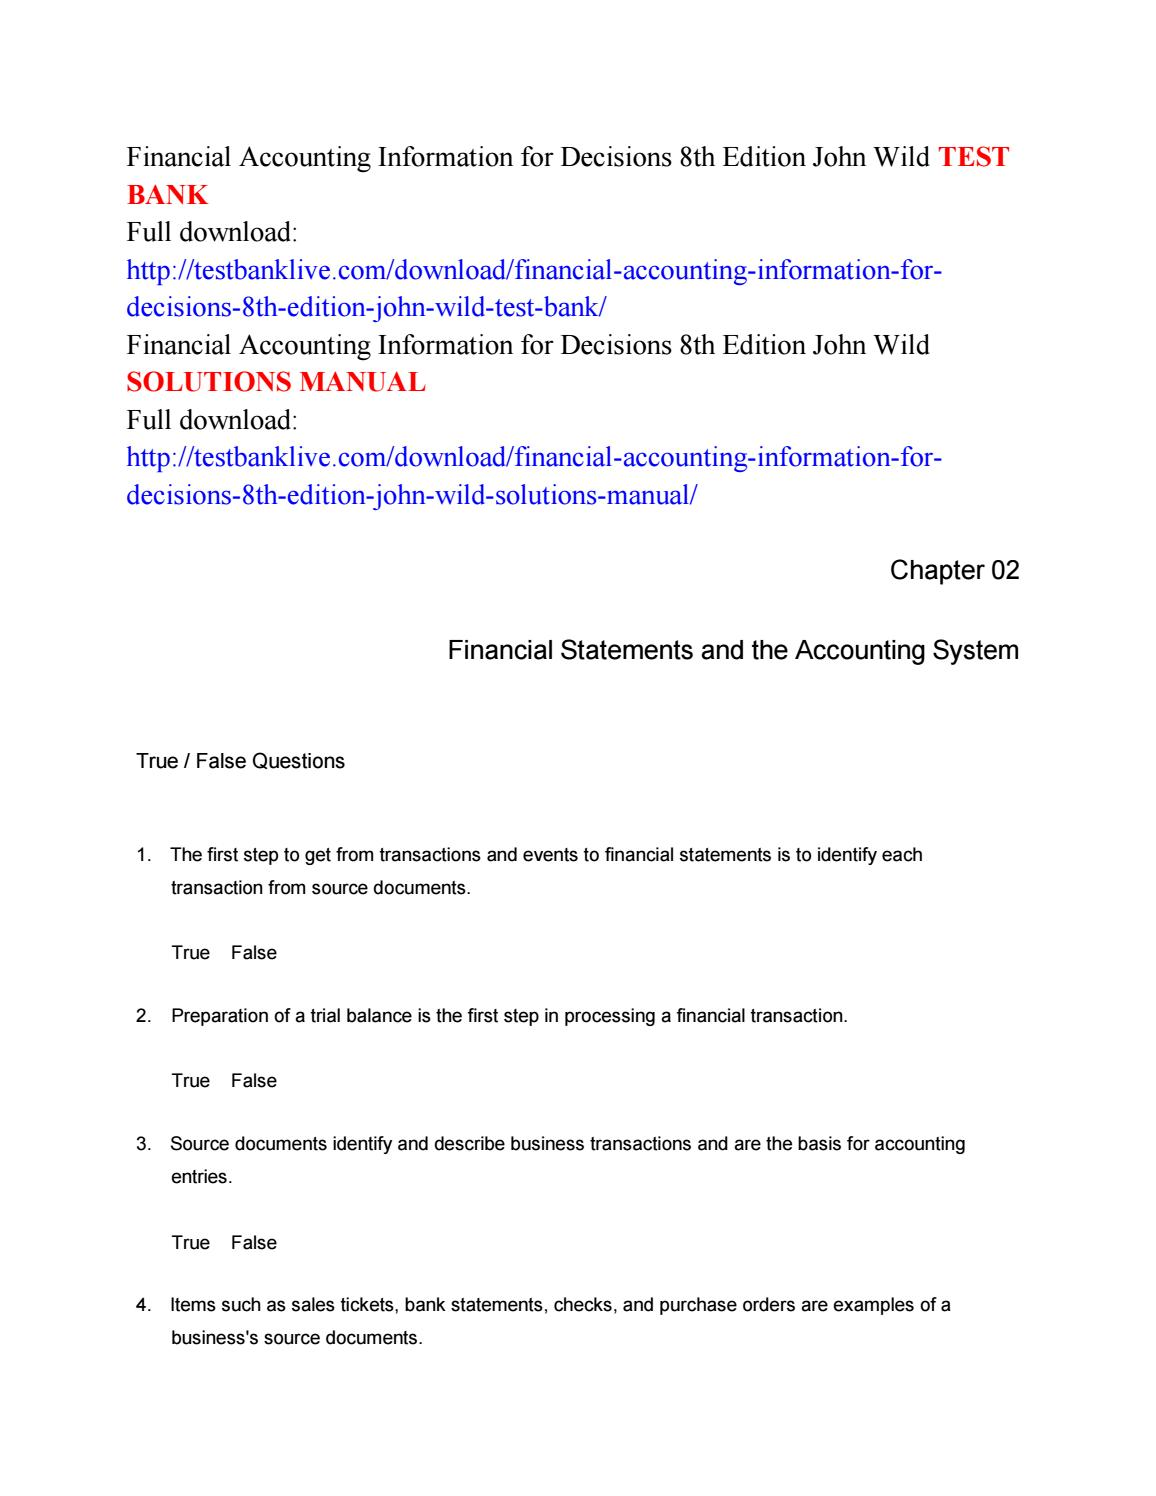 Financial Accounting Information For Decisions 8th Edition John Wild Test Bank By Wild444 Issuu